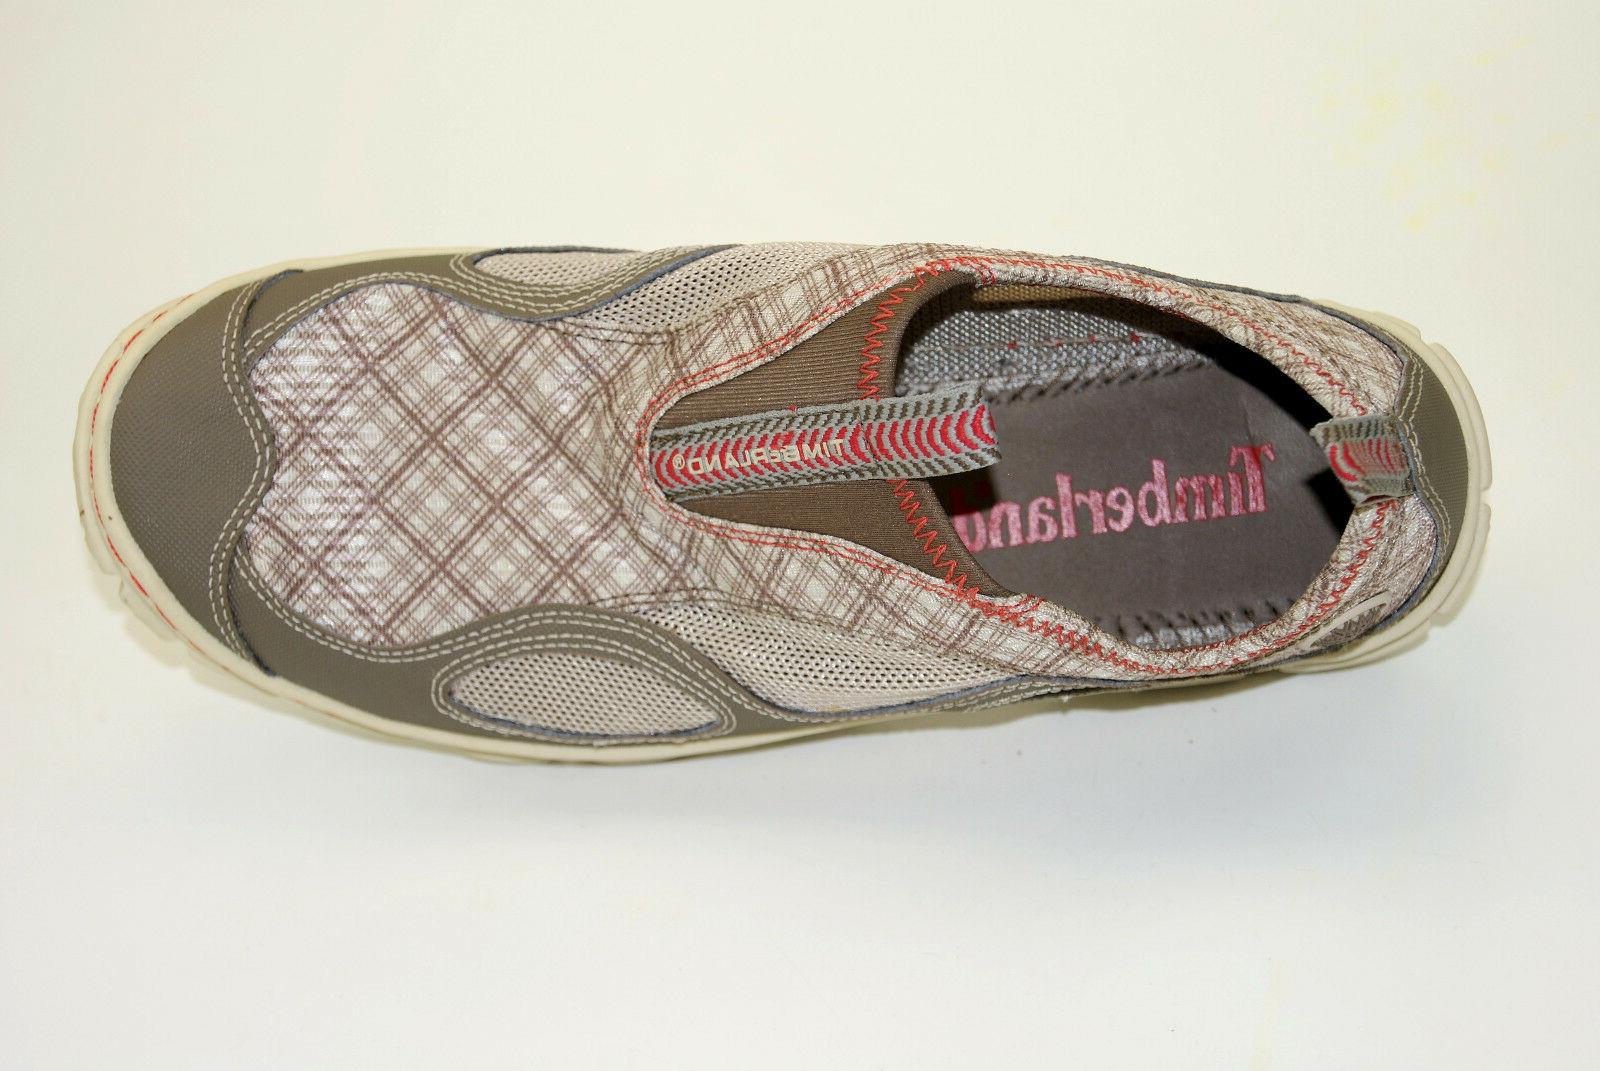 Timberland Shoes Beach Shoes Trekking Shoes 30175